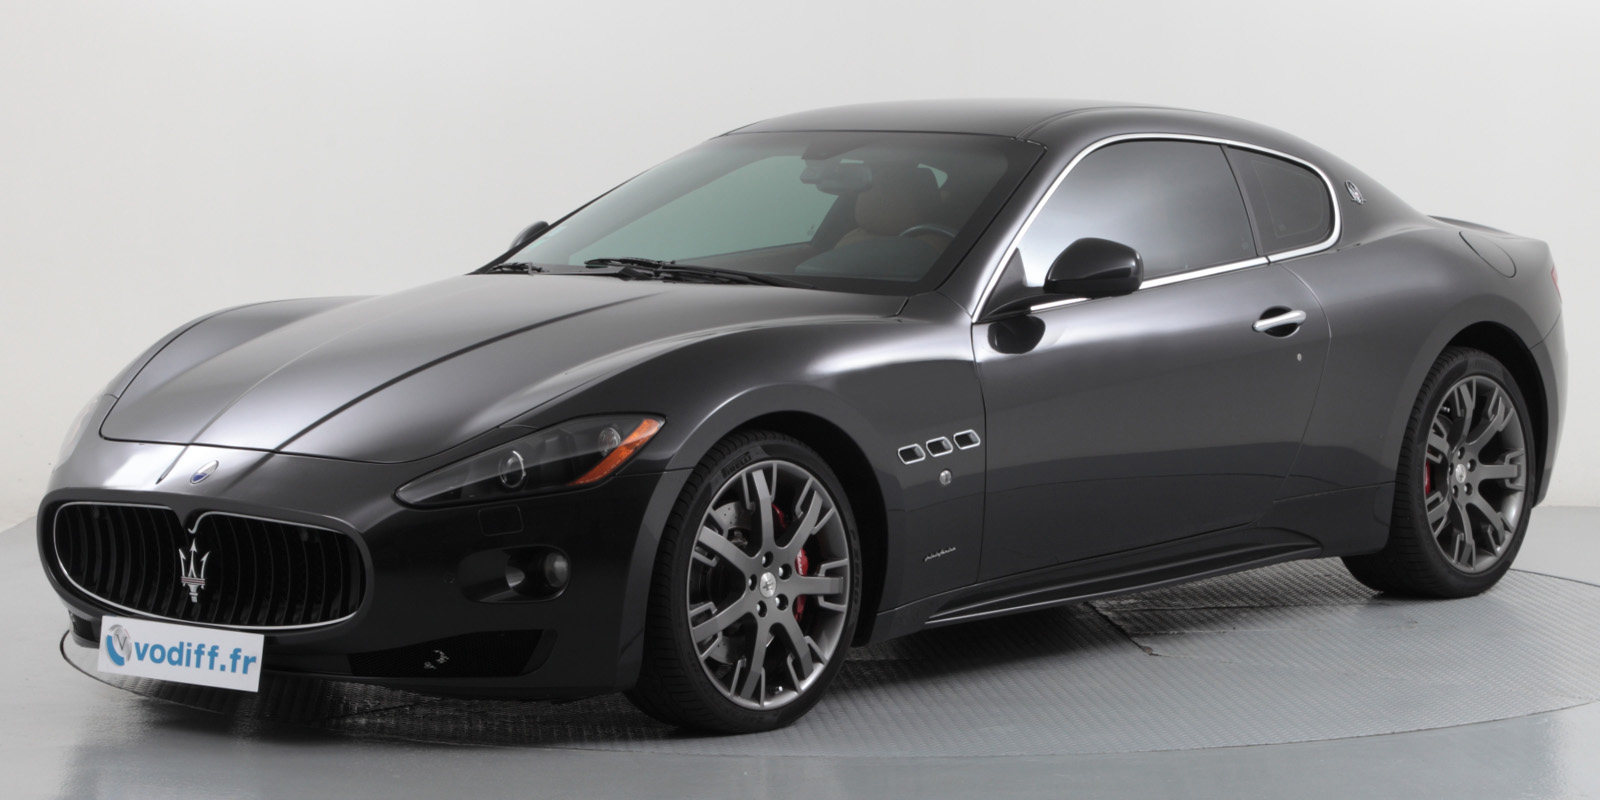 maserati granturismo 4 7 l v8 440 cv bvr occasion. Black Bedroom Furniture Sets. Home Design Ideas